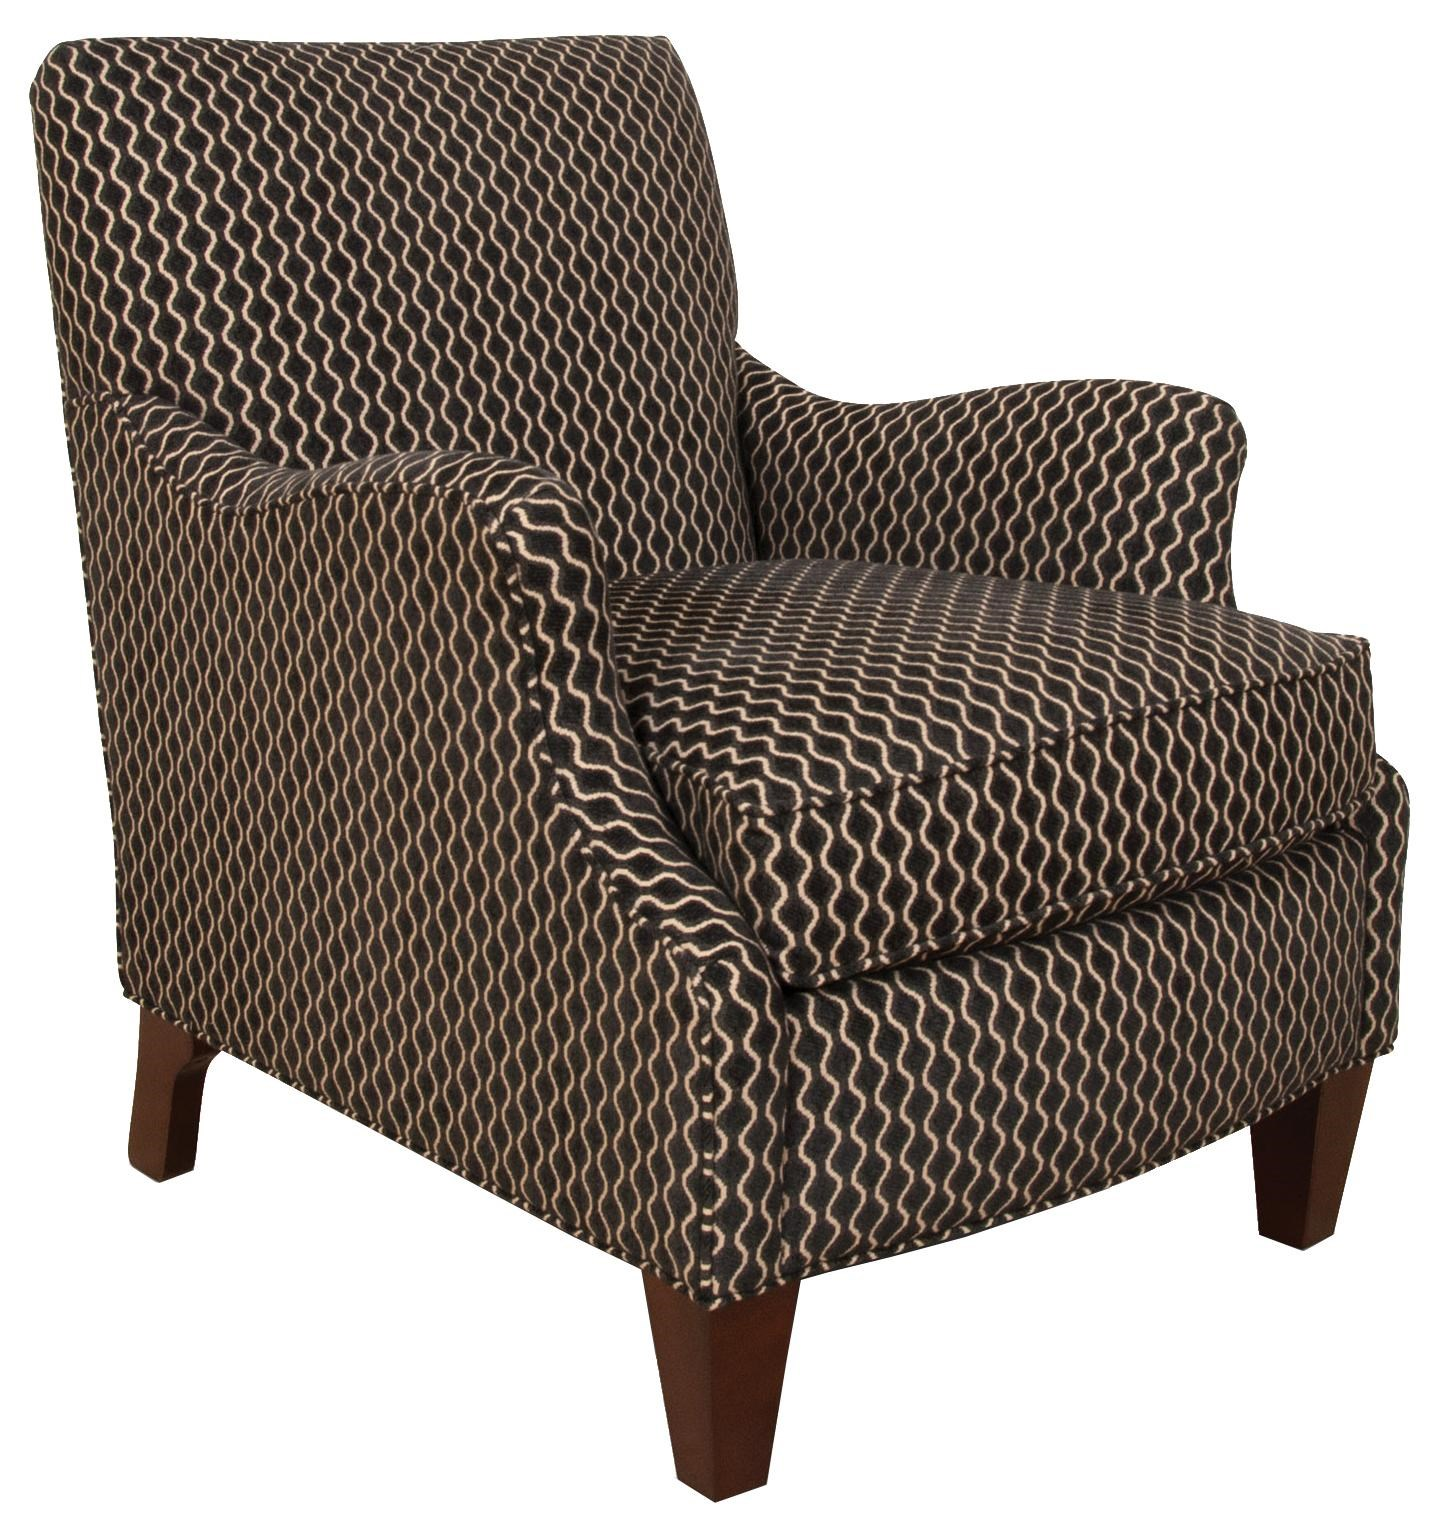 England Gillian 8434 Decorative Accent Chair With Charming Transitional  Style | Great American Home Store | Upholstered Chair